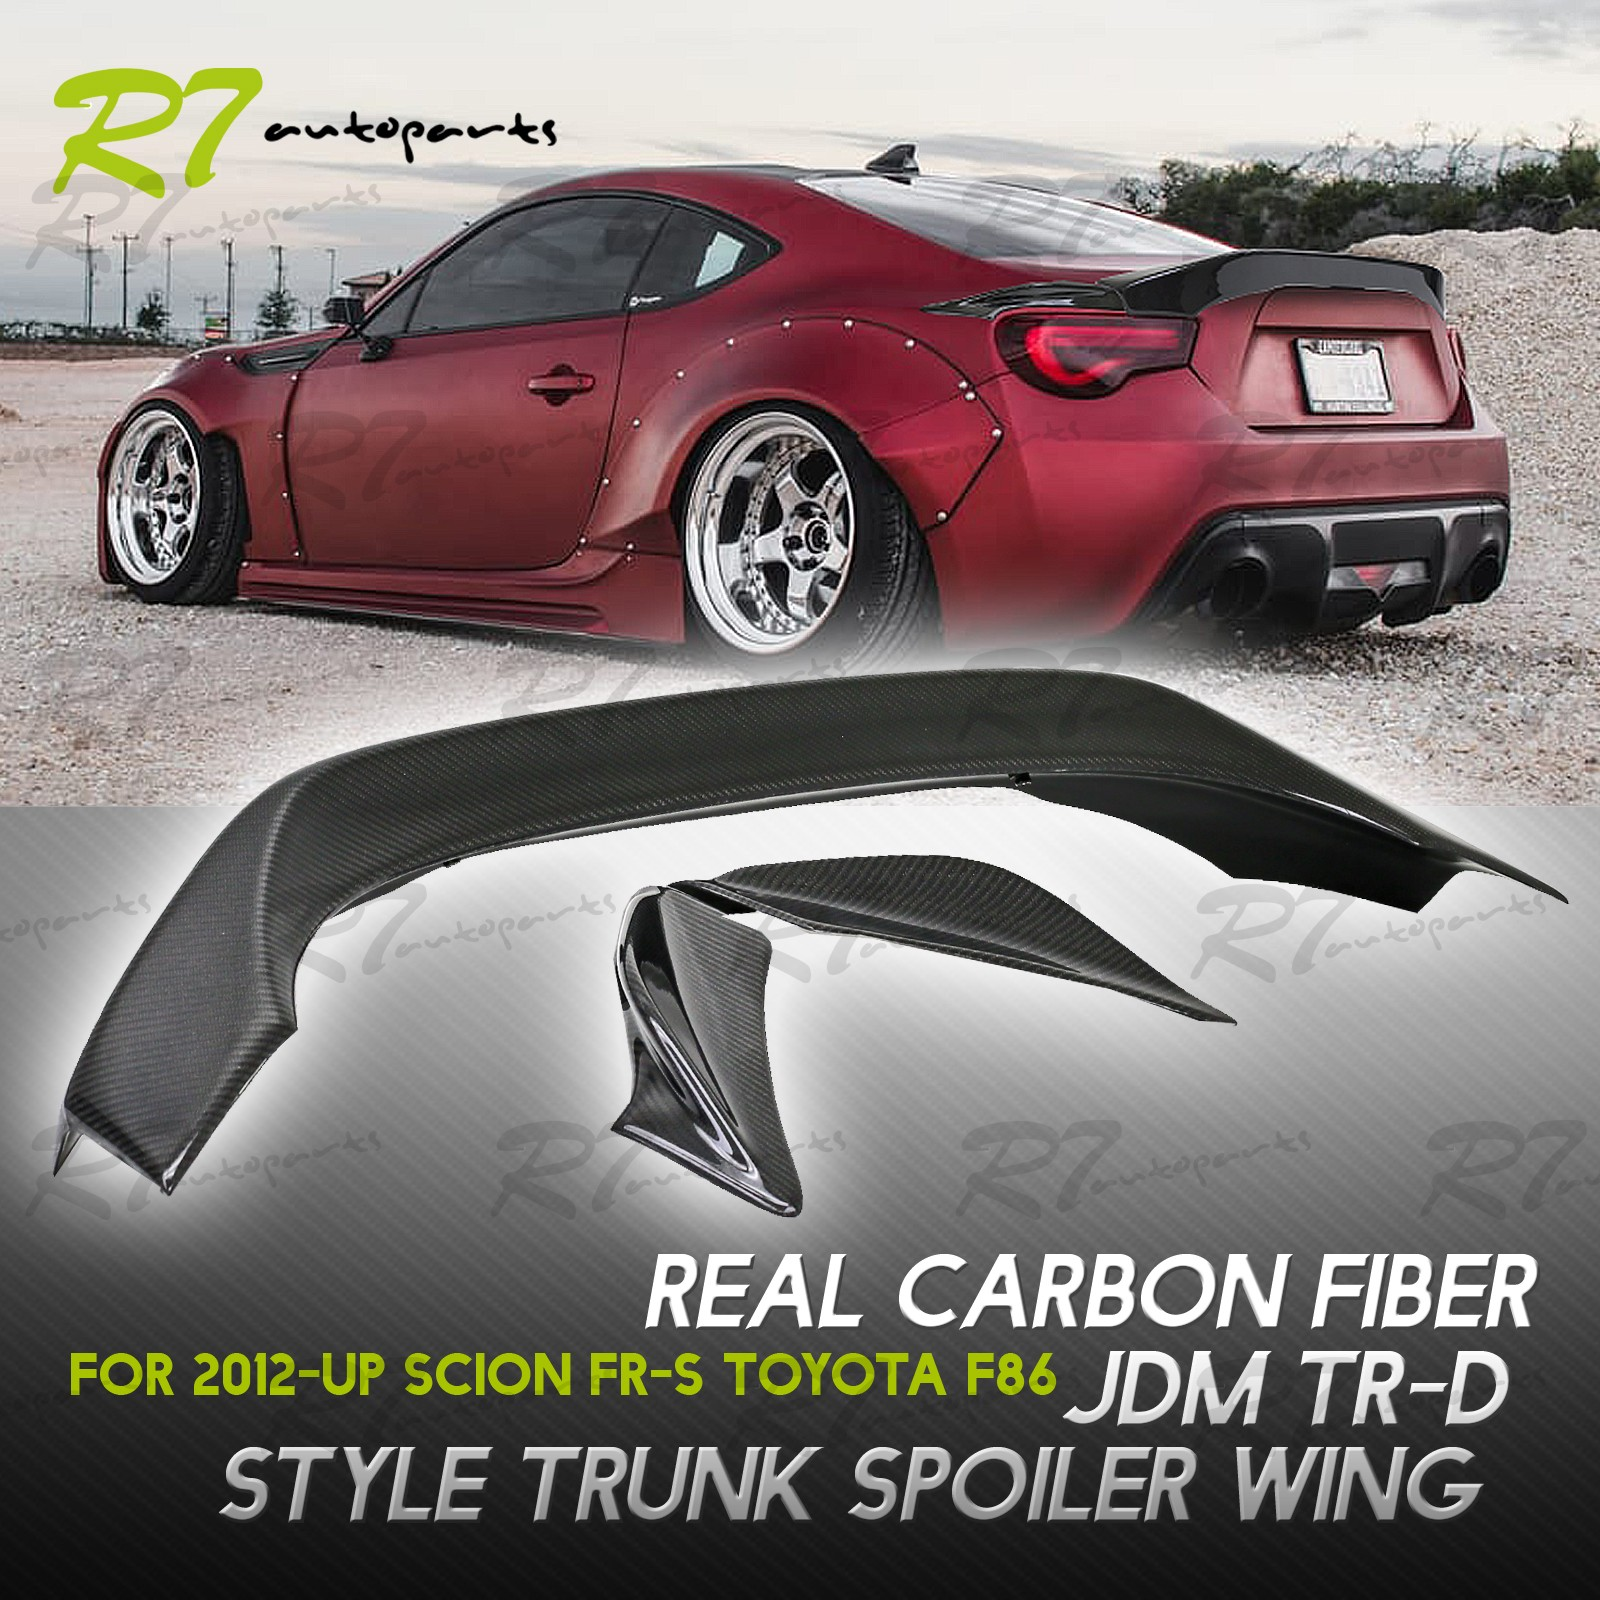 FOR 13 17 FRS 86 BRZ TRD STYLE 3PC CARBON FIBER DUCKTAIL REAR TOP